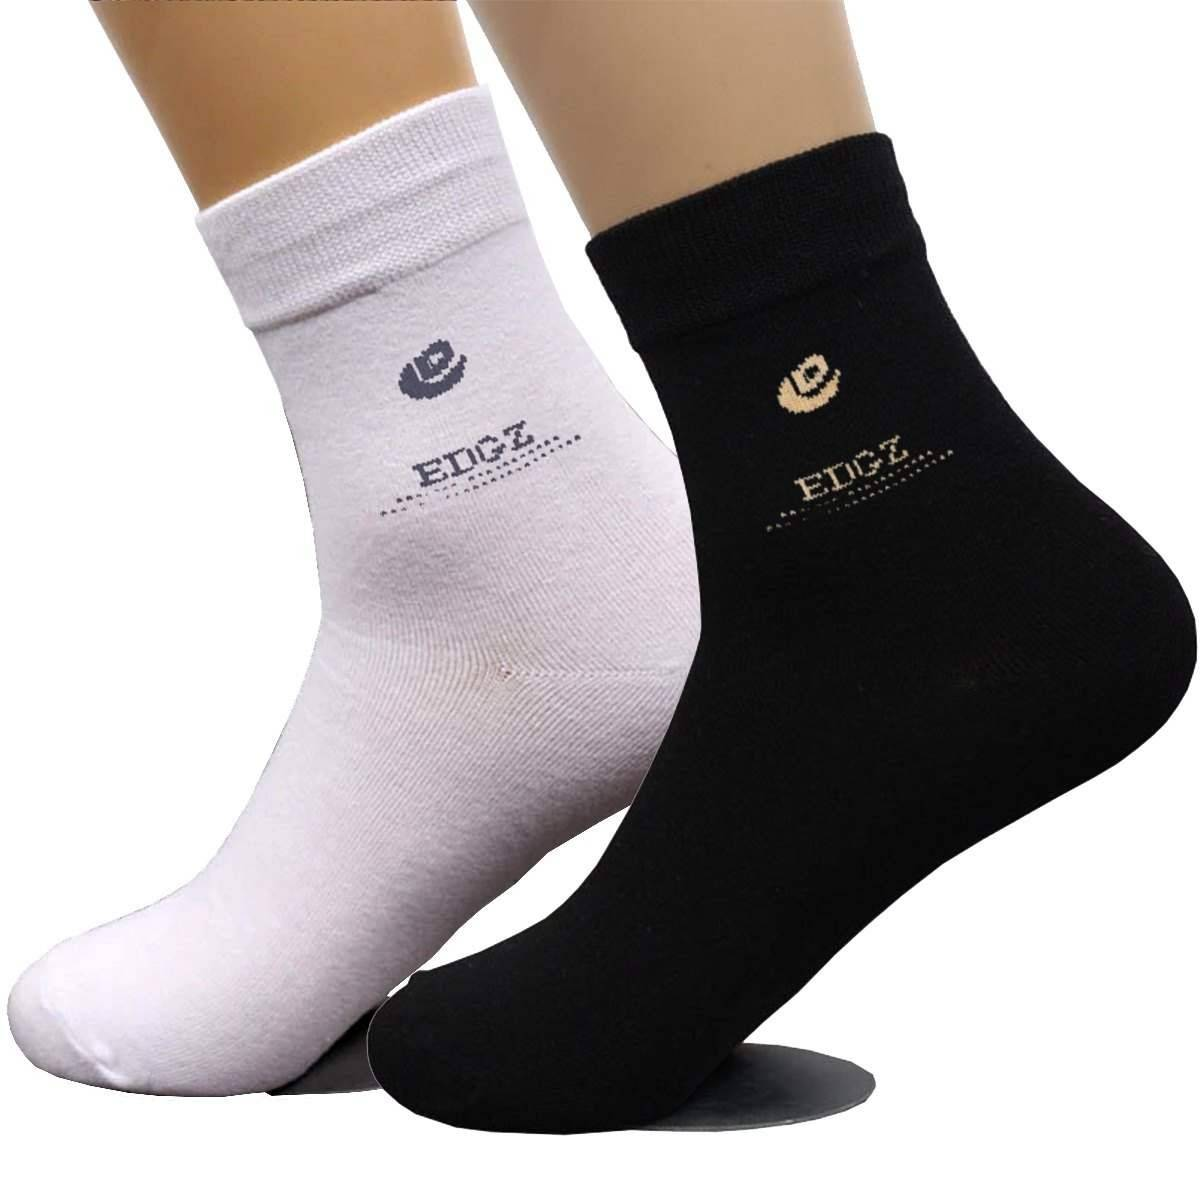 2 Pairs / Cotton Breathable Adult Socks For Men